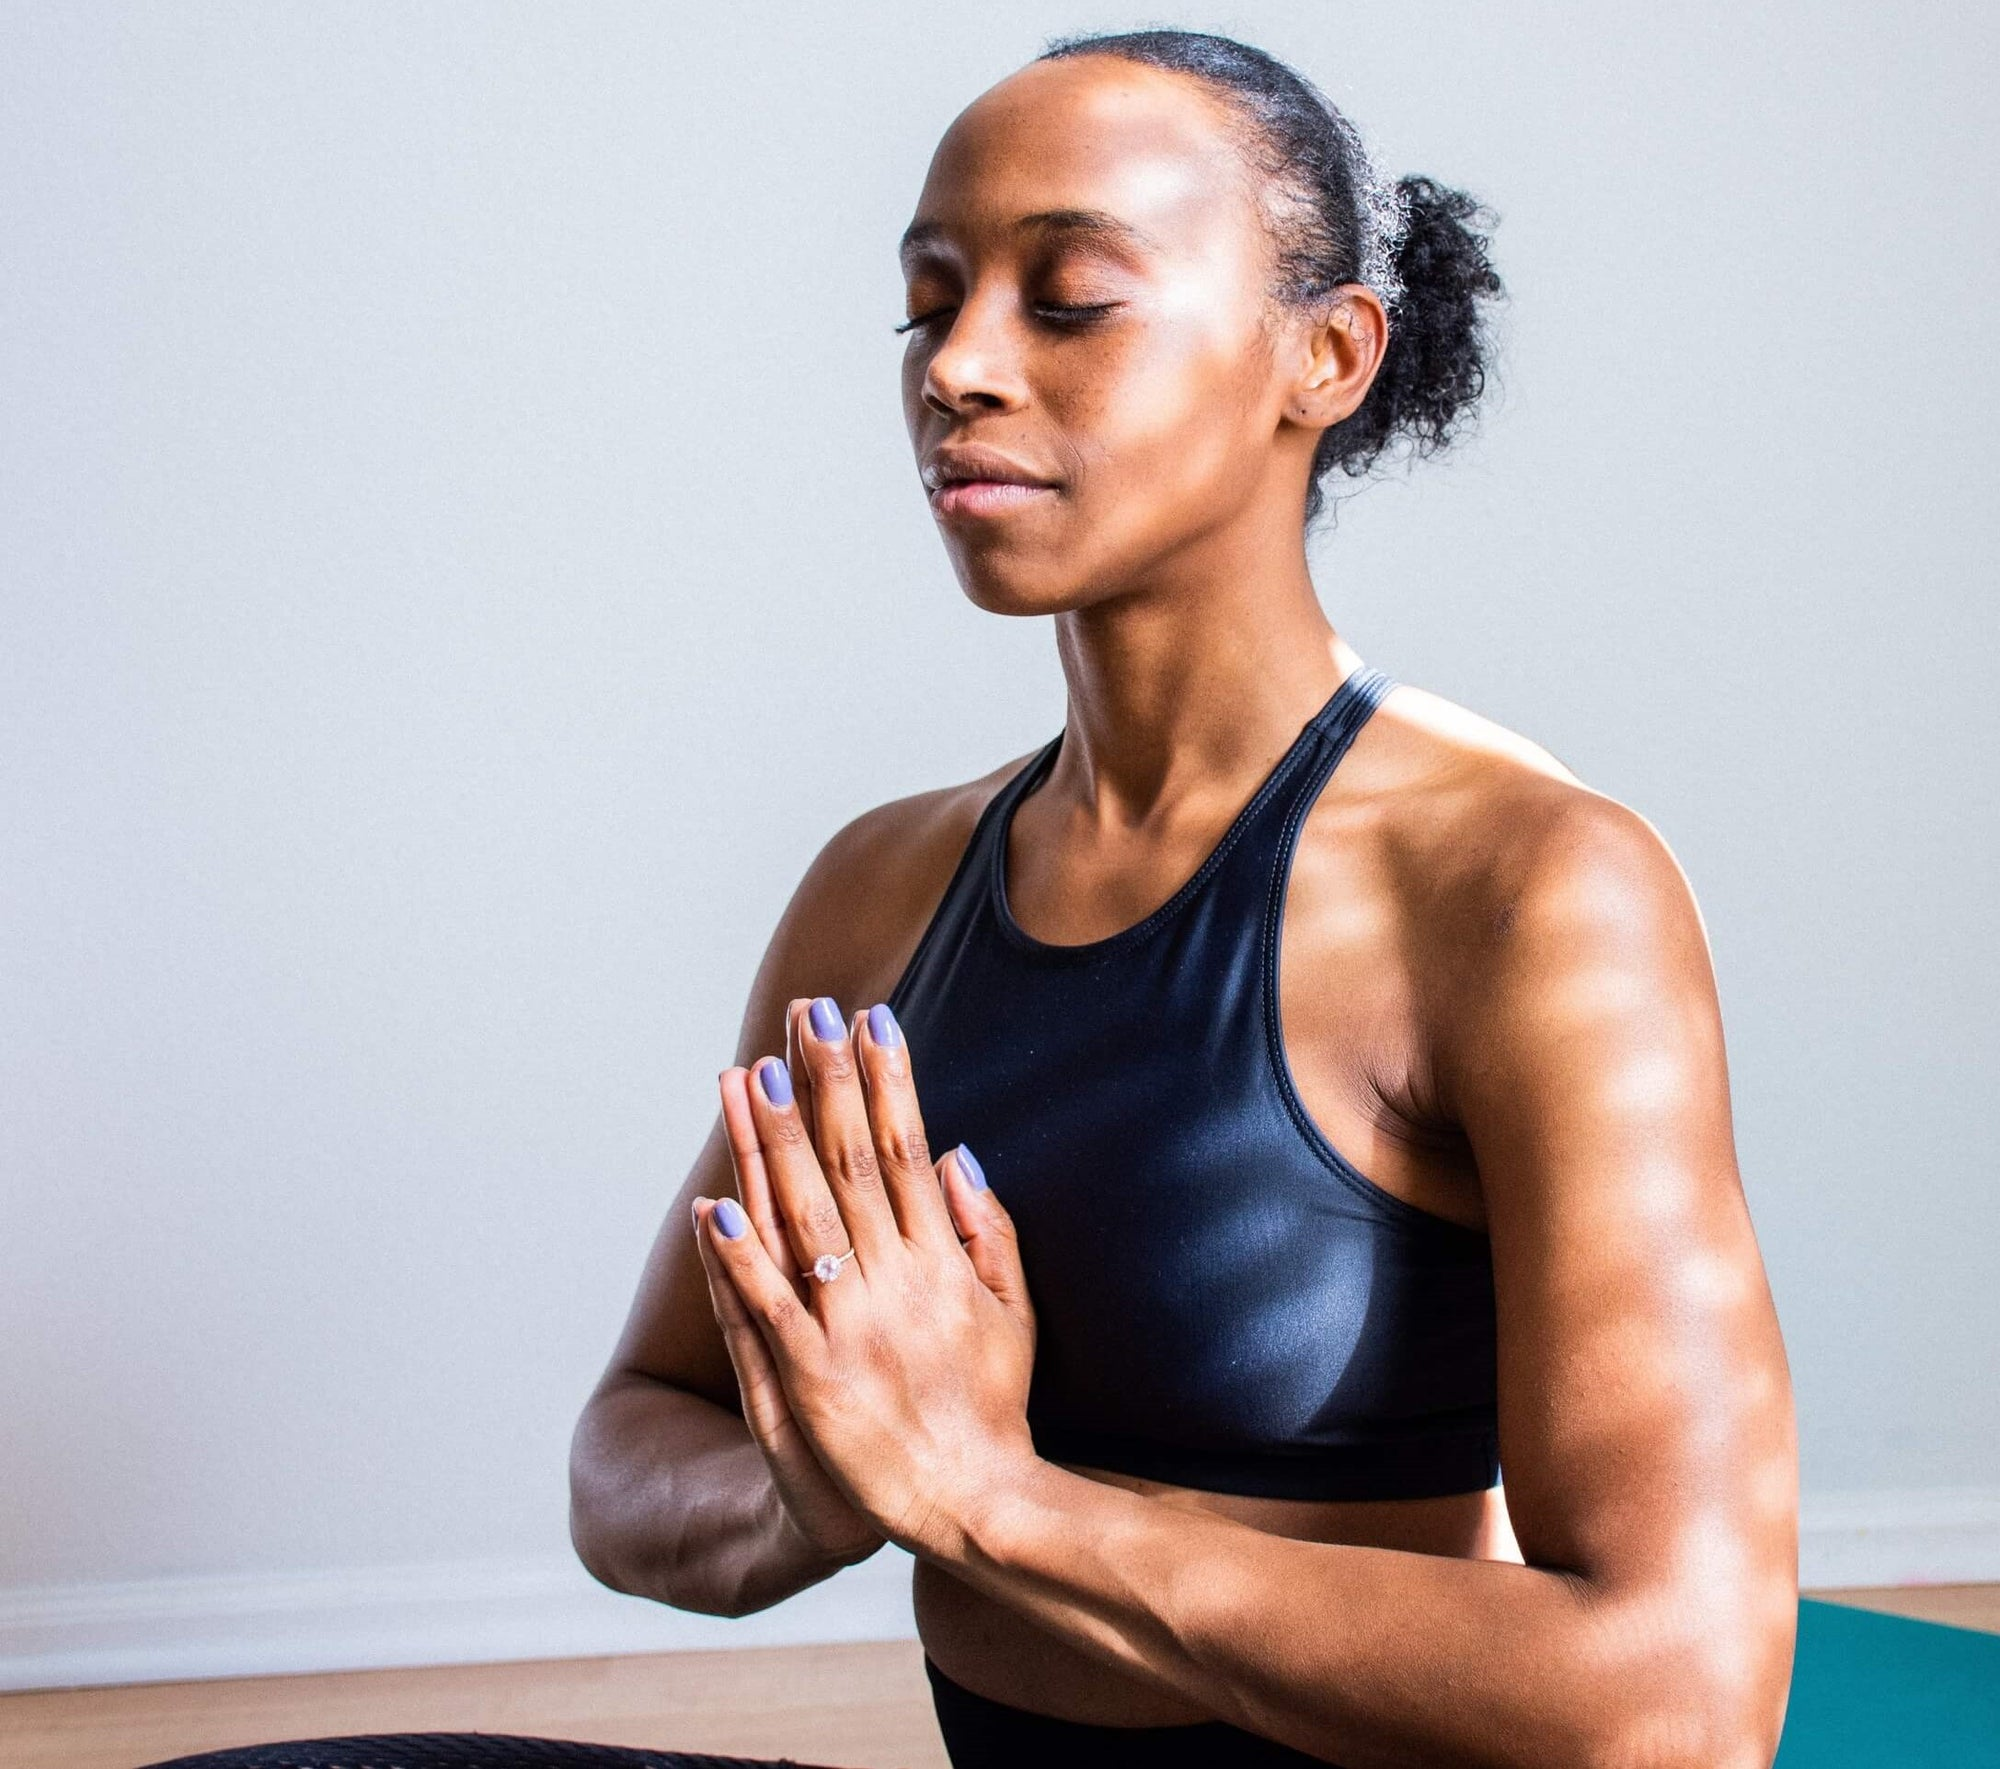 Feeling Stressed? Learn How to Meditate